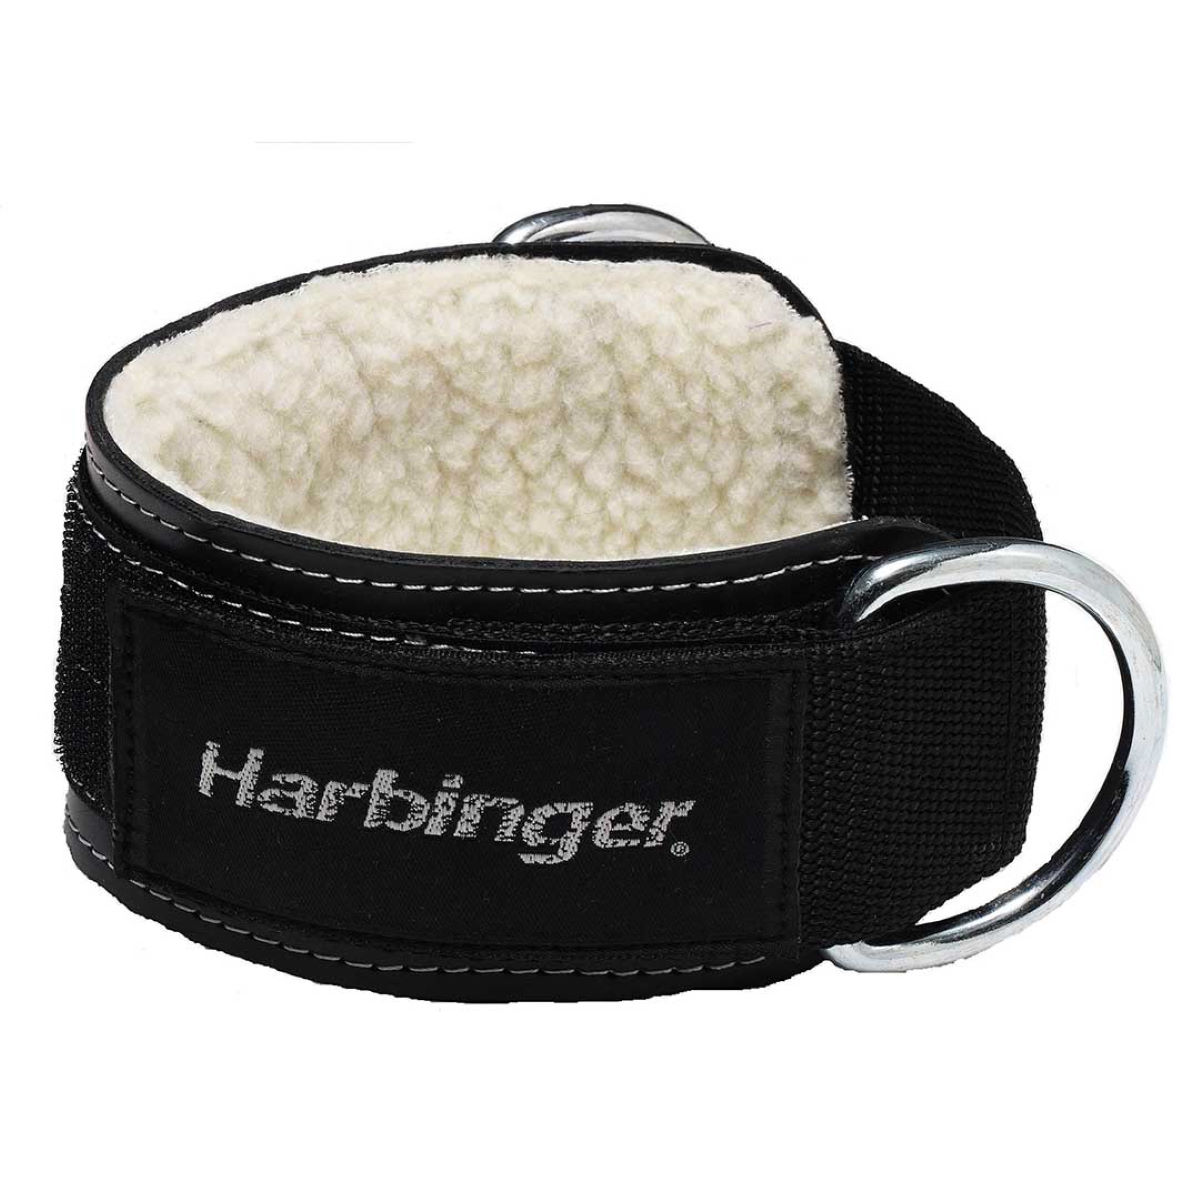 "Harbinger 3"" Heavy Duty Ankle Cuff - Entrenamiento general"